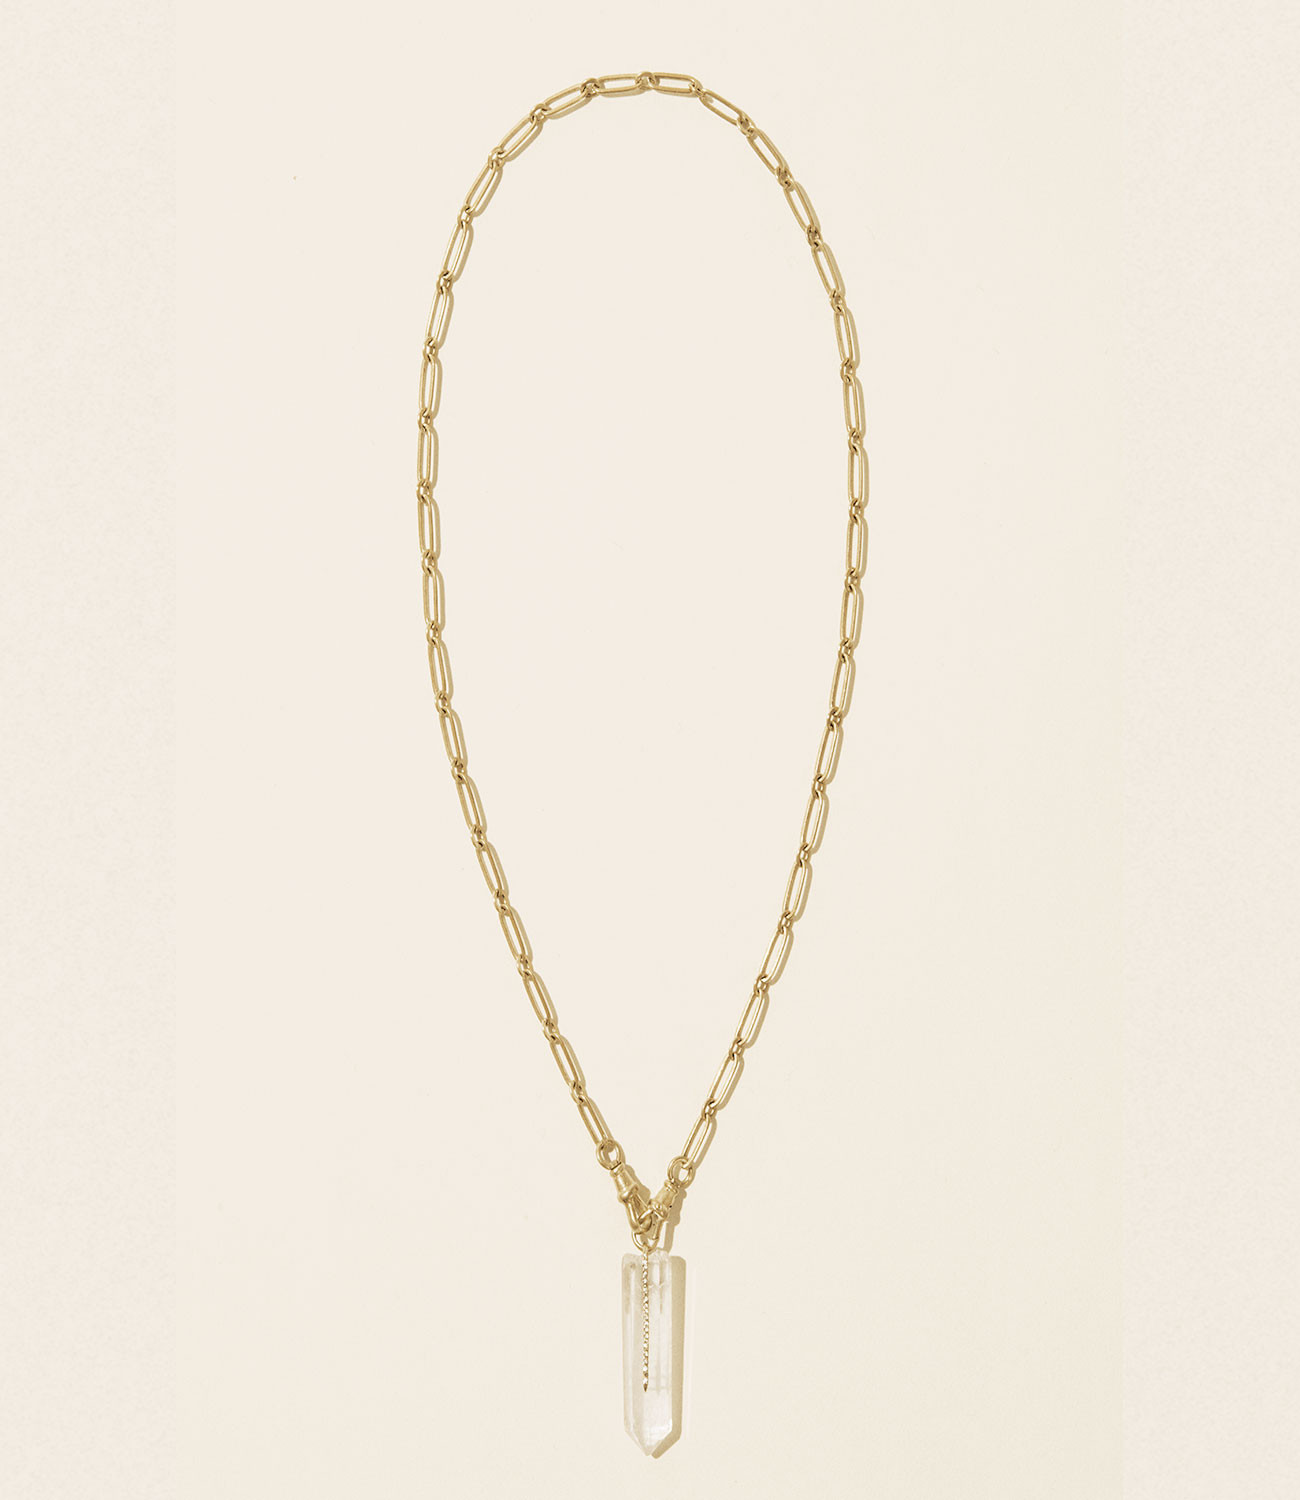 Pascale Monvoisin Necklace MOON N°2